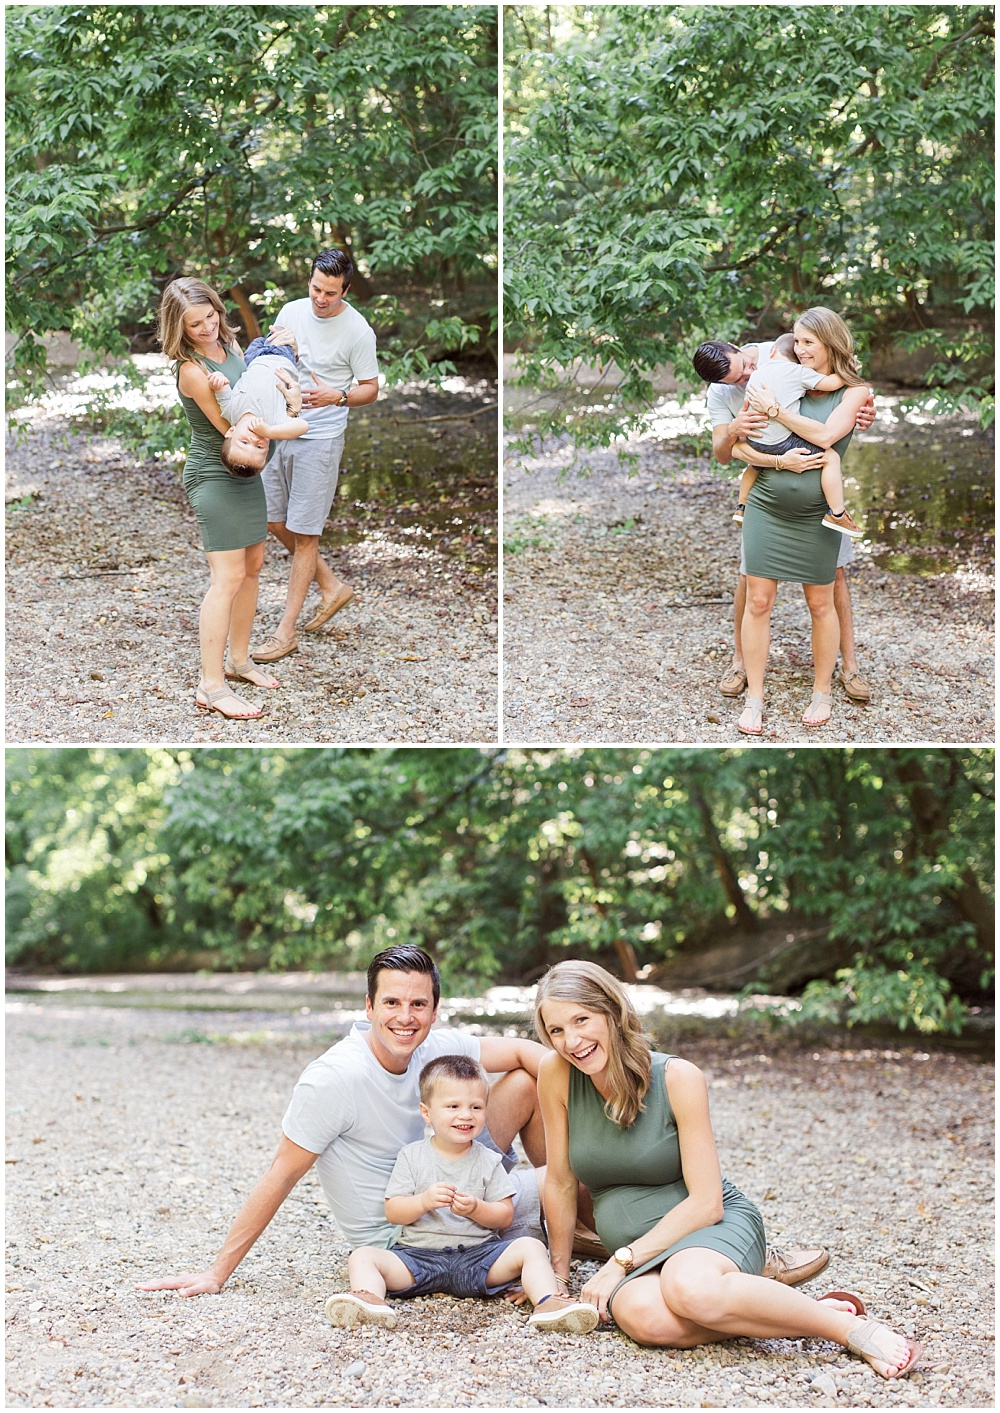 Fall maternity photo session at Flowing Well Creek with Sami Renee Photography. Muted army green, navy and white fall family outfit inspiration with outdoor natural light photography.